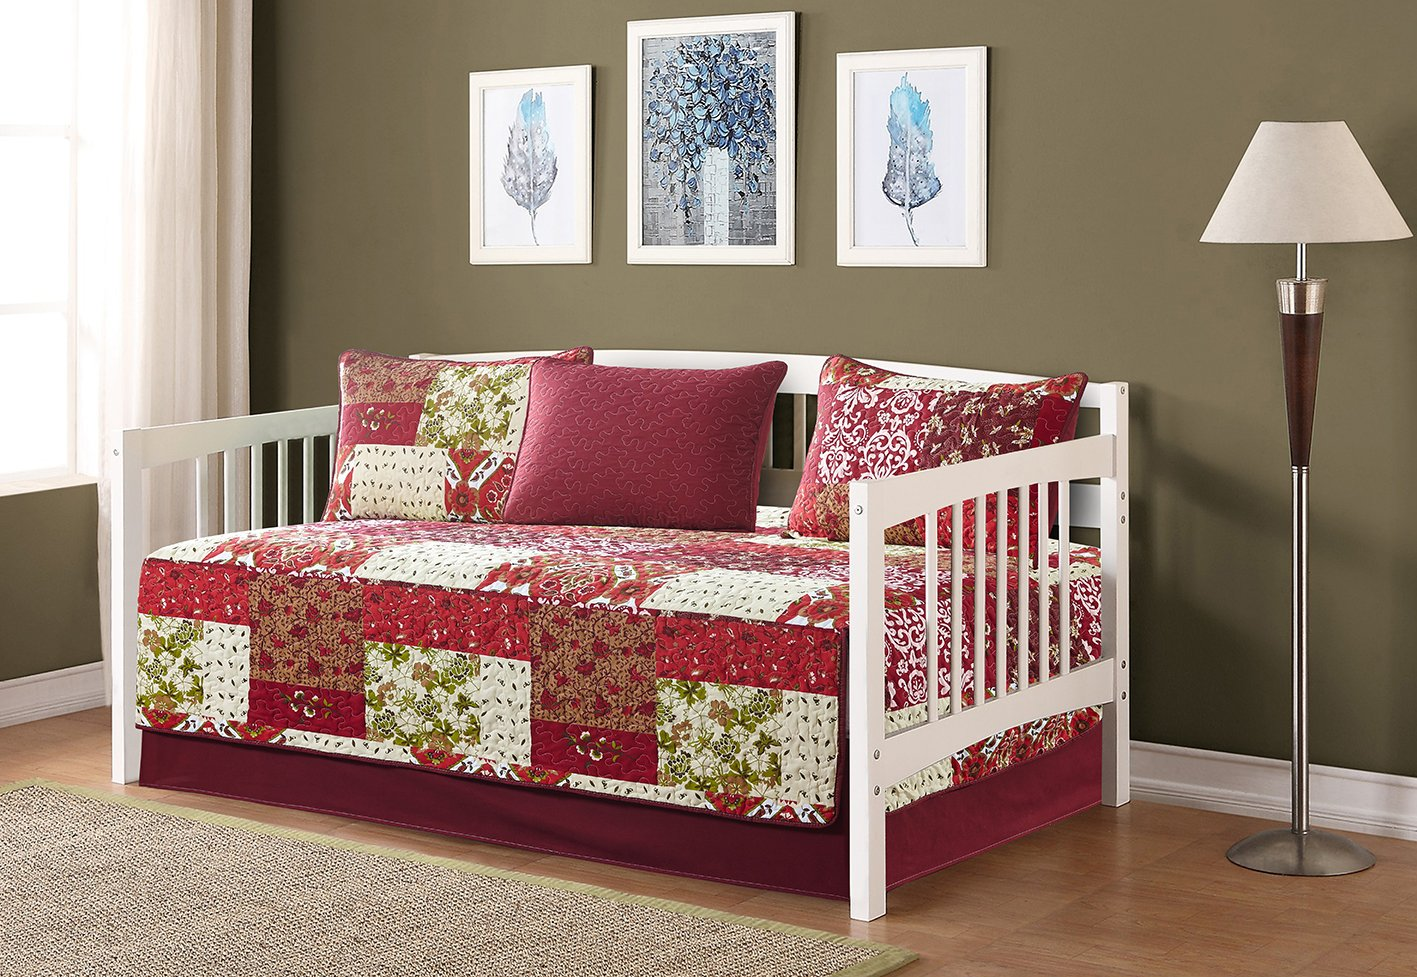 Mk Collection 5pc Day Bed Oversize Quilted Cover Set Patchwork Floral Red Burgundy Green Beige Brown White New by MK Home